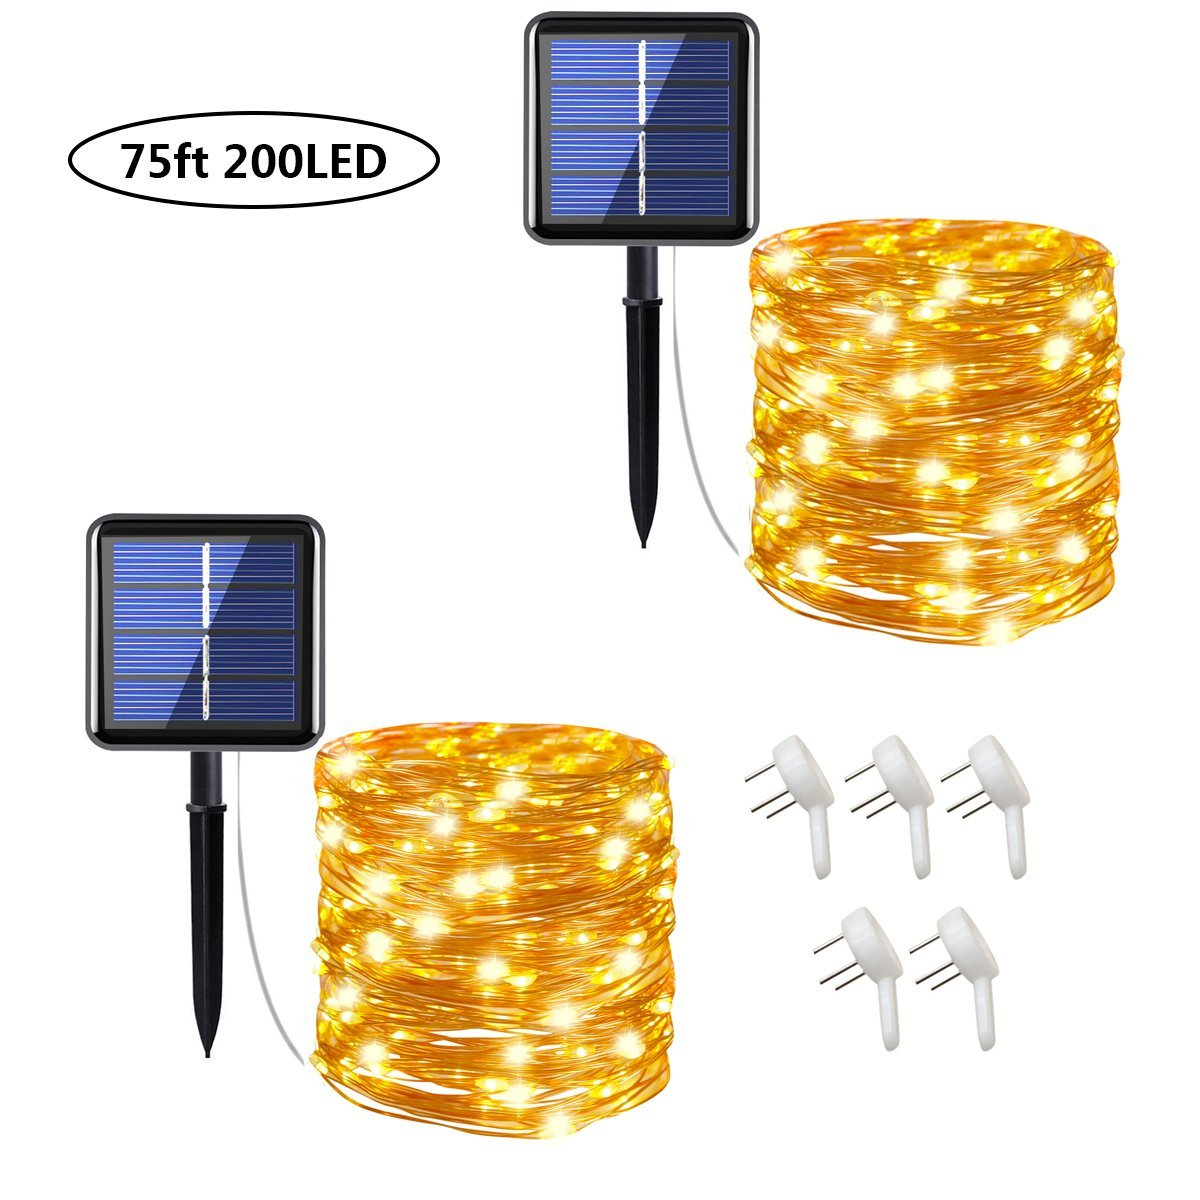 Cusomik Solar String Lights Outdoor,75ft 200 LED Copper Wire Lights,8 Modes Starry Lights, IP65 Waterproof Fairy Christmas Decorative Lights for patio,Garden,Gate,Yard,Wedding,Party 2 pack